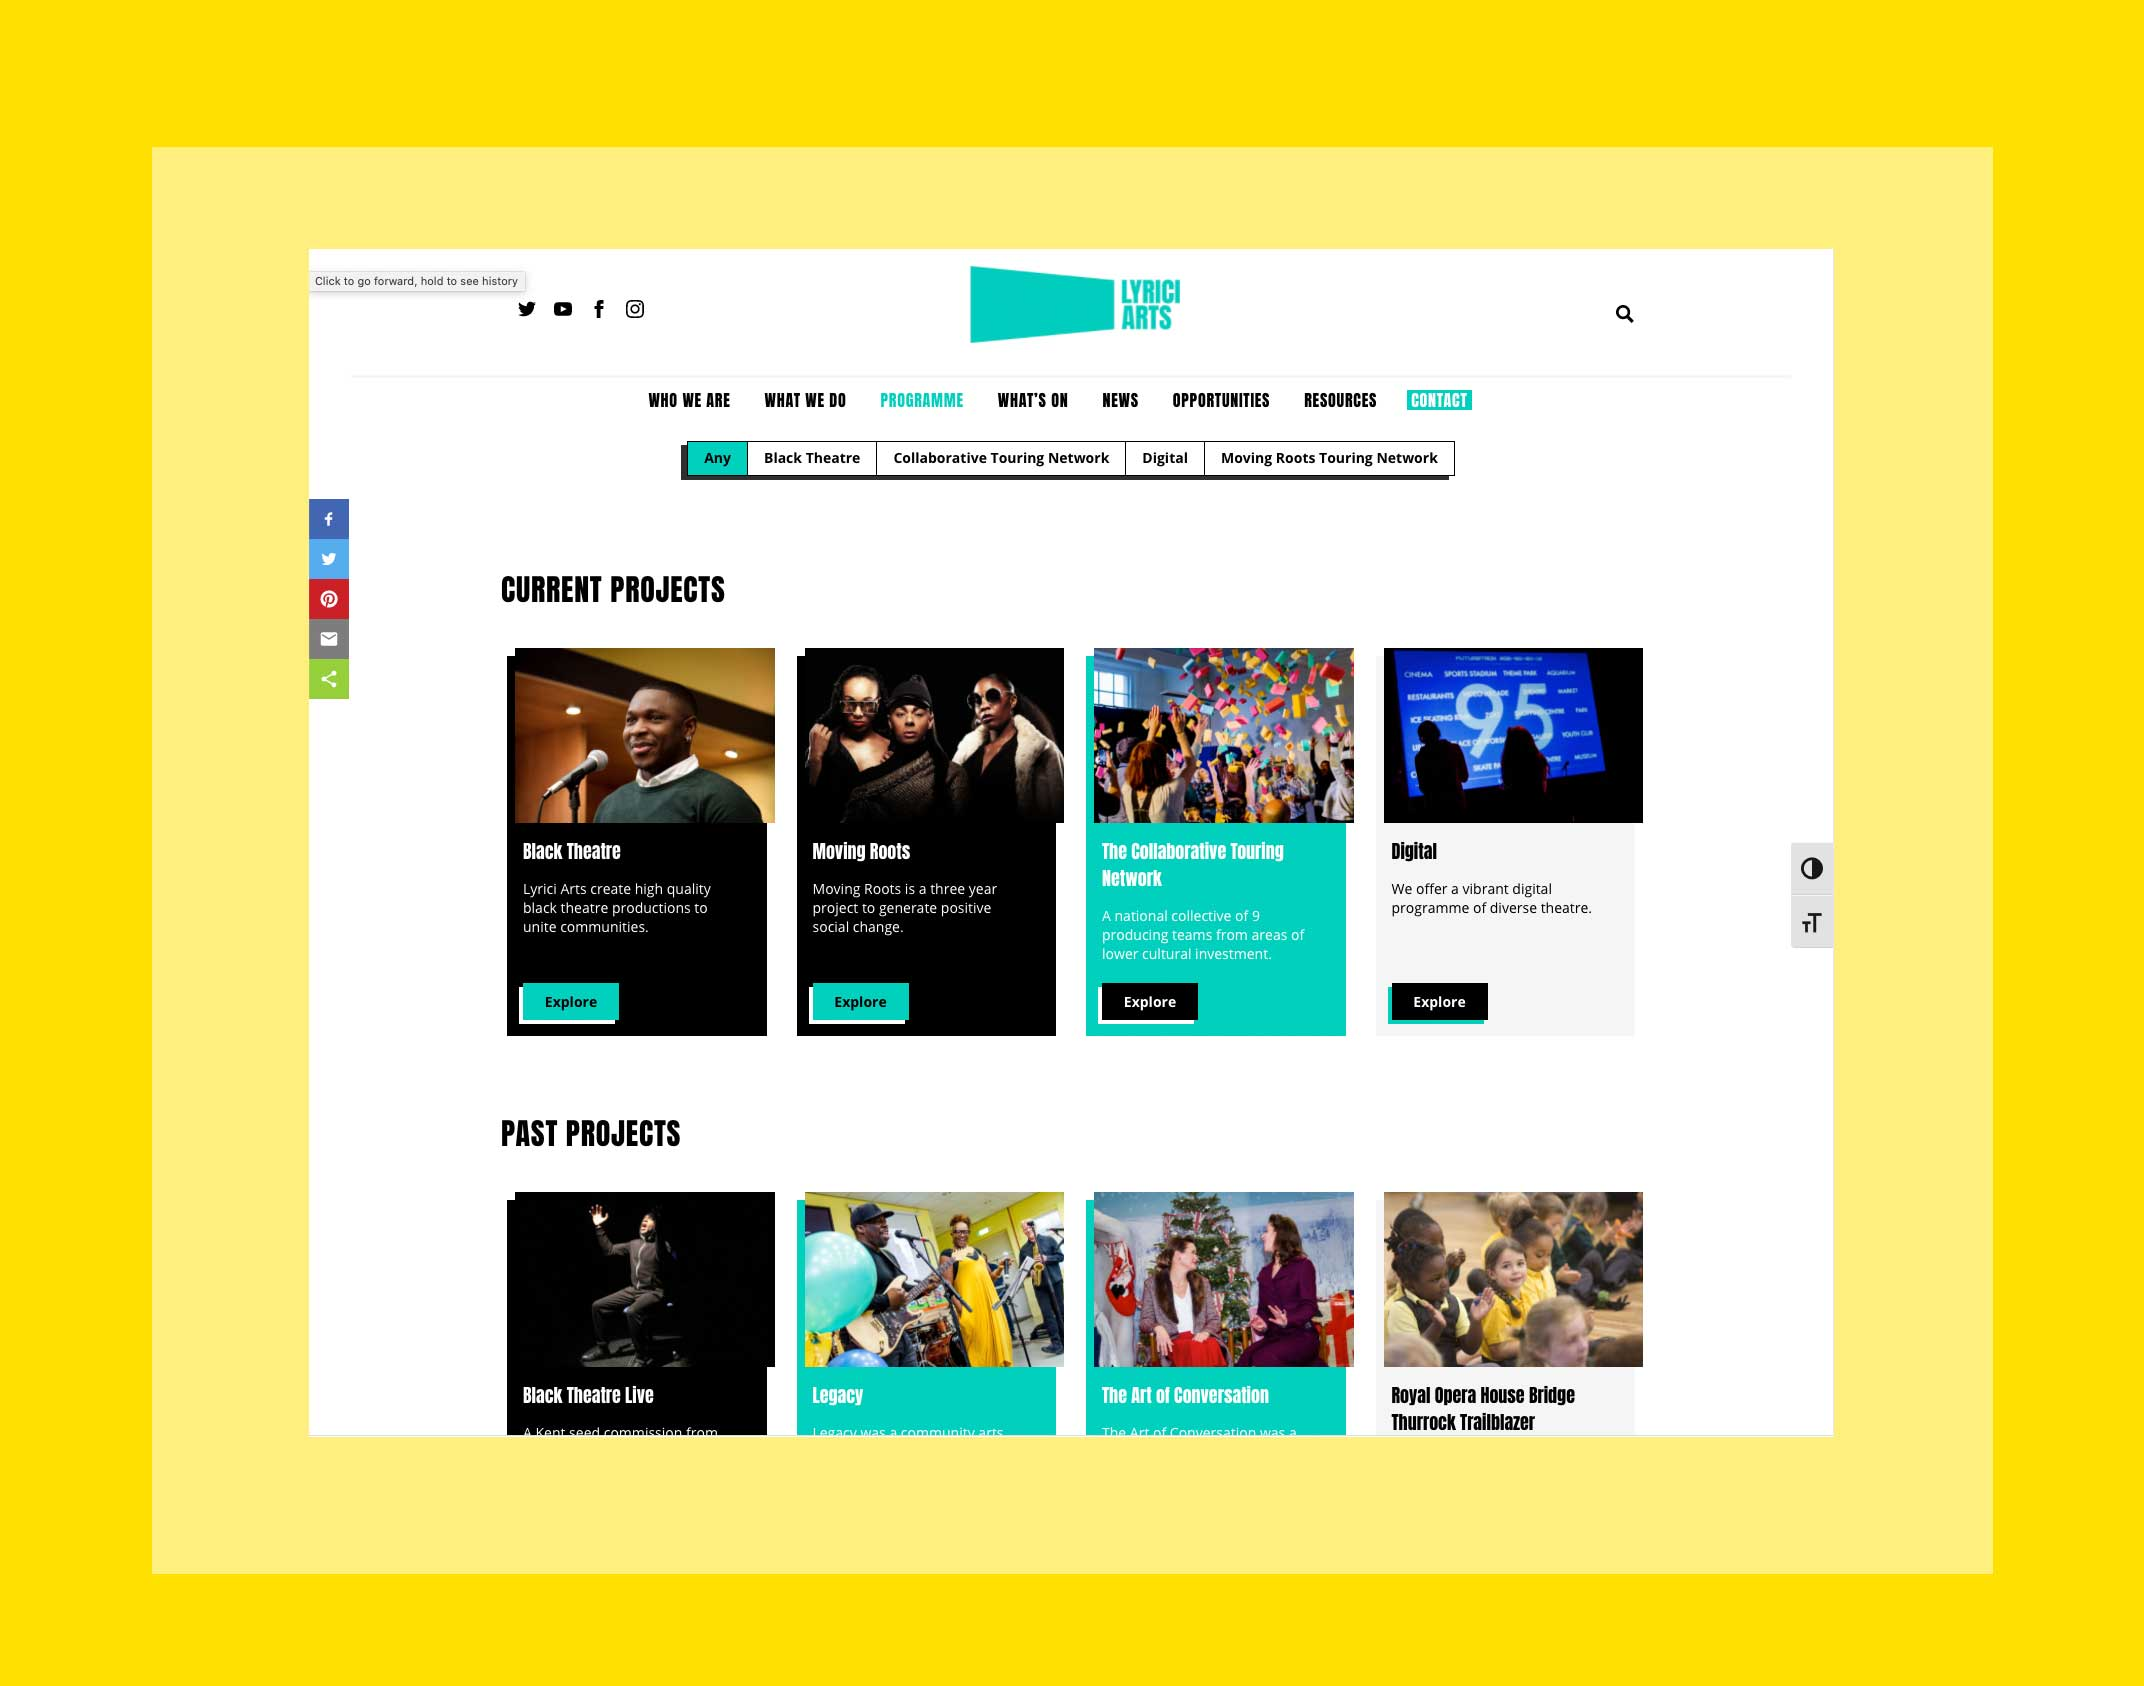 A screenshot of the projects page on Lyrici Arts